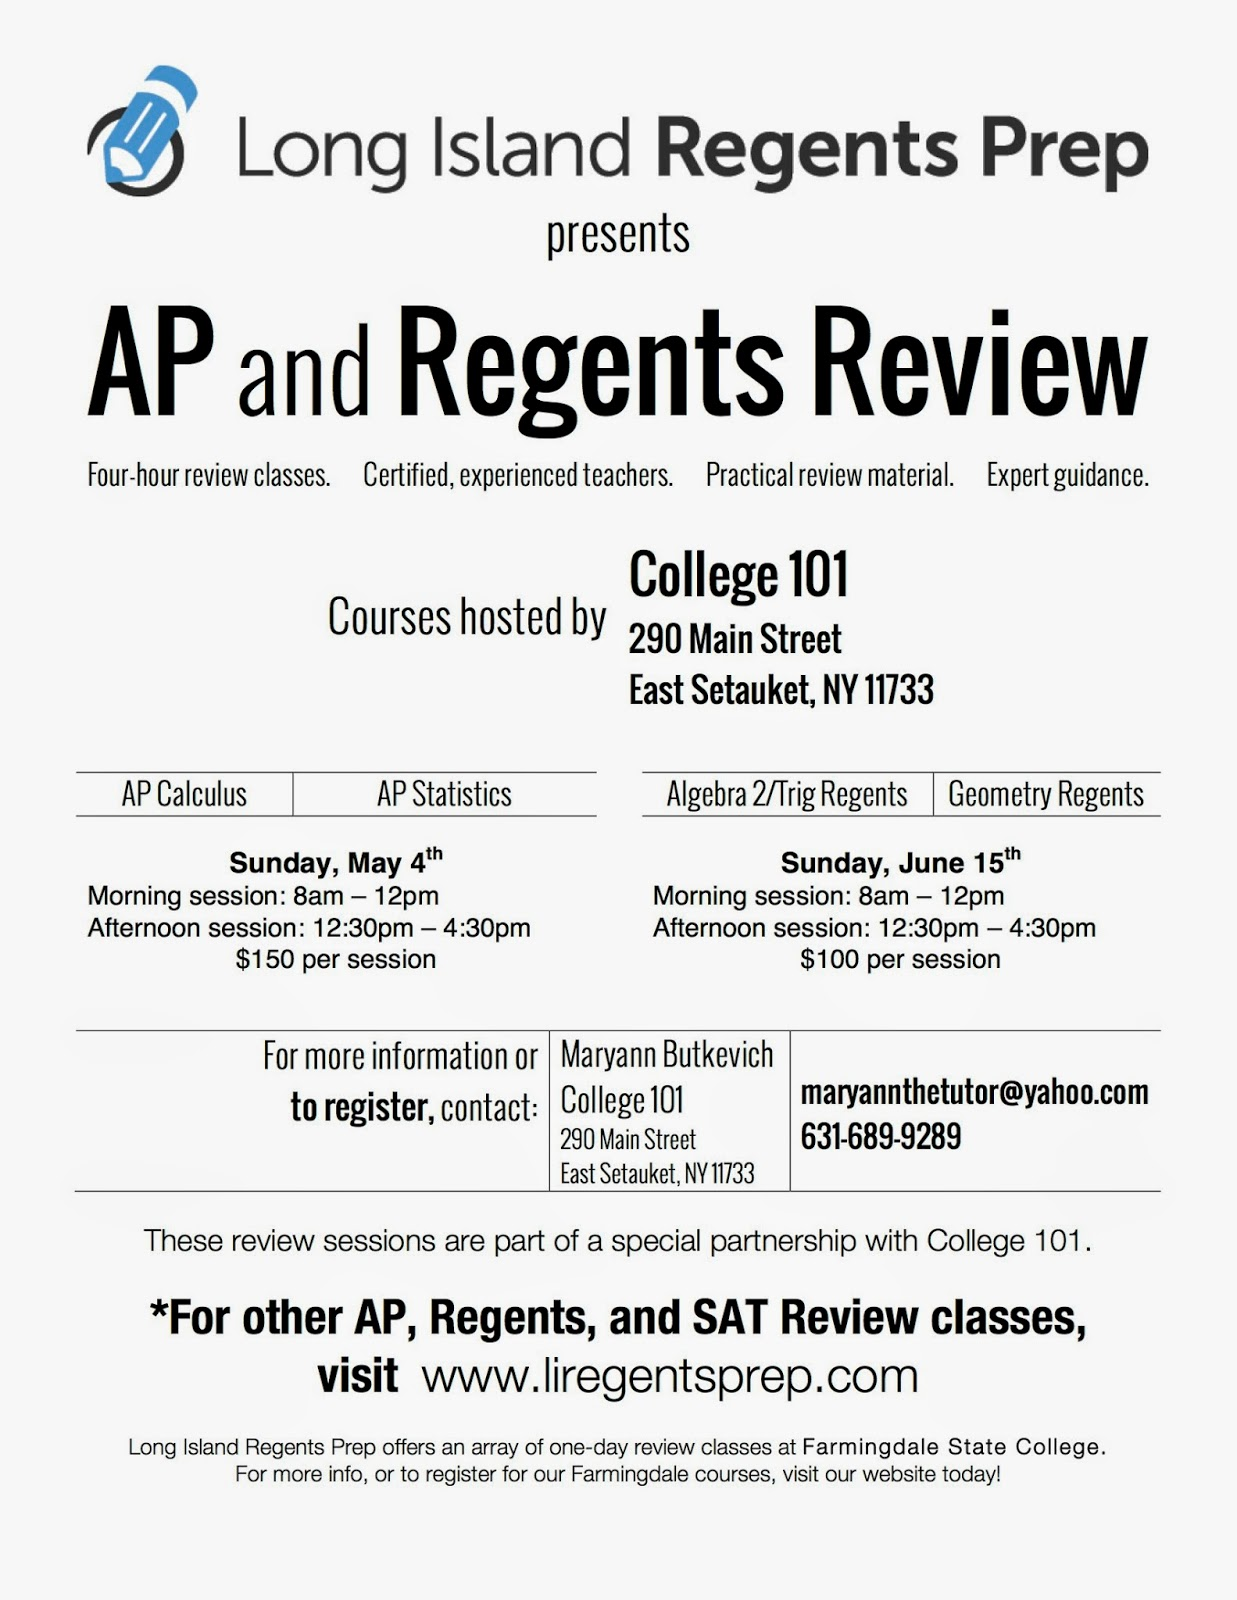 ap world history essay questions wwii Barron's test barron's has a full-length online ap world history practice test fully updated for the new curriculum includes multiple choice, short answer, dbq, and essay questions.